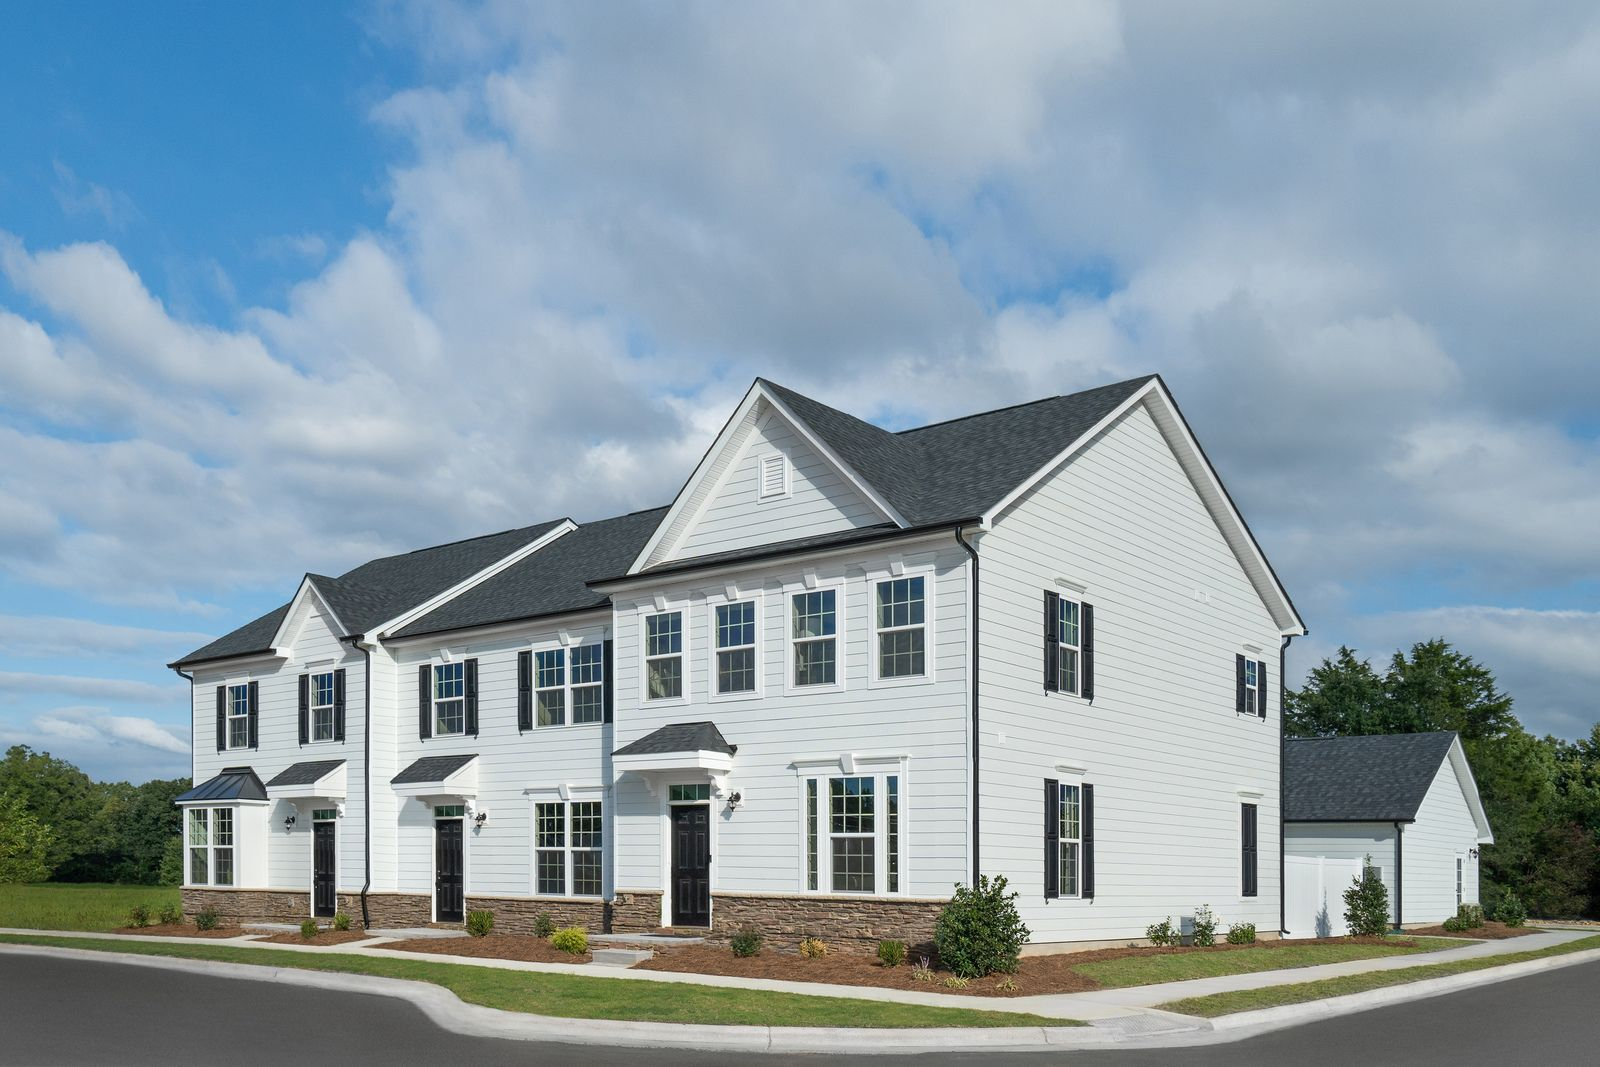 Why rent? Own a 3 bed townhome with fenced-in yard and 2-car garage included:Ready to own?Schedule your visitto see these townhomes in person and start your homebuying journey!